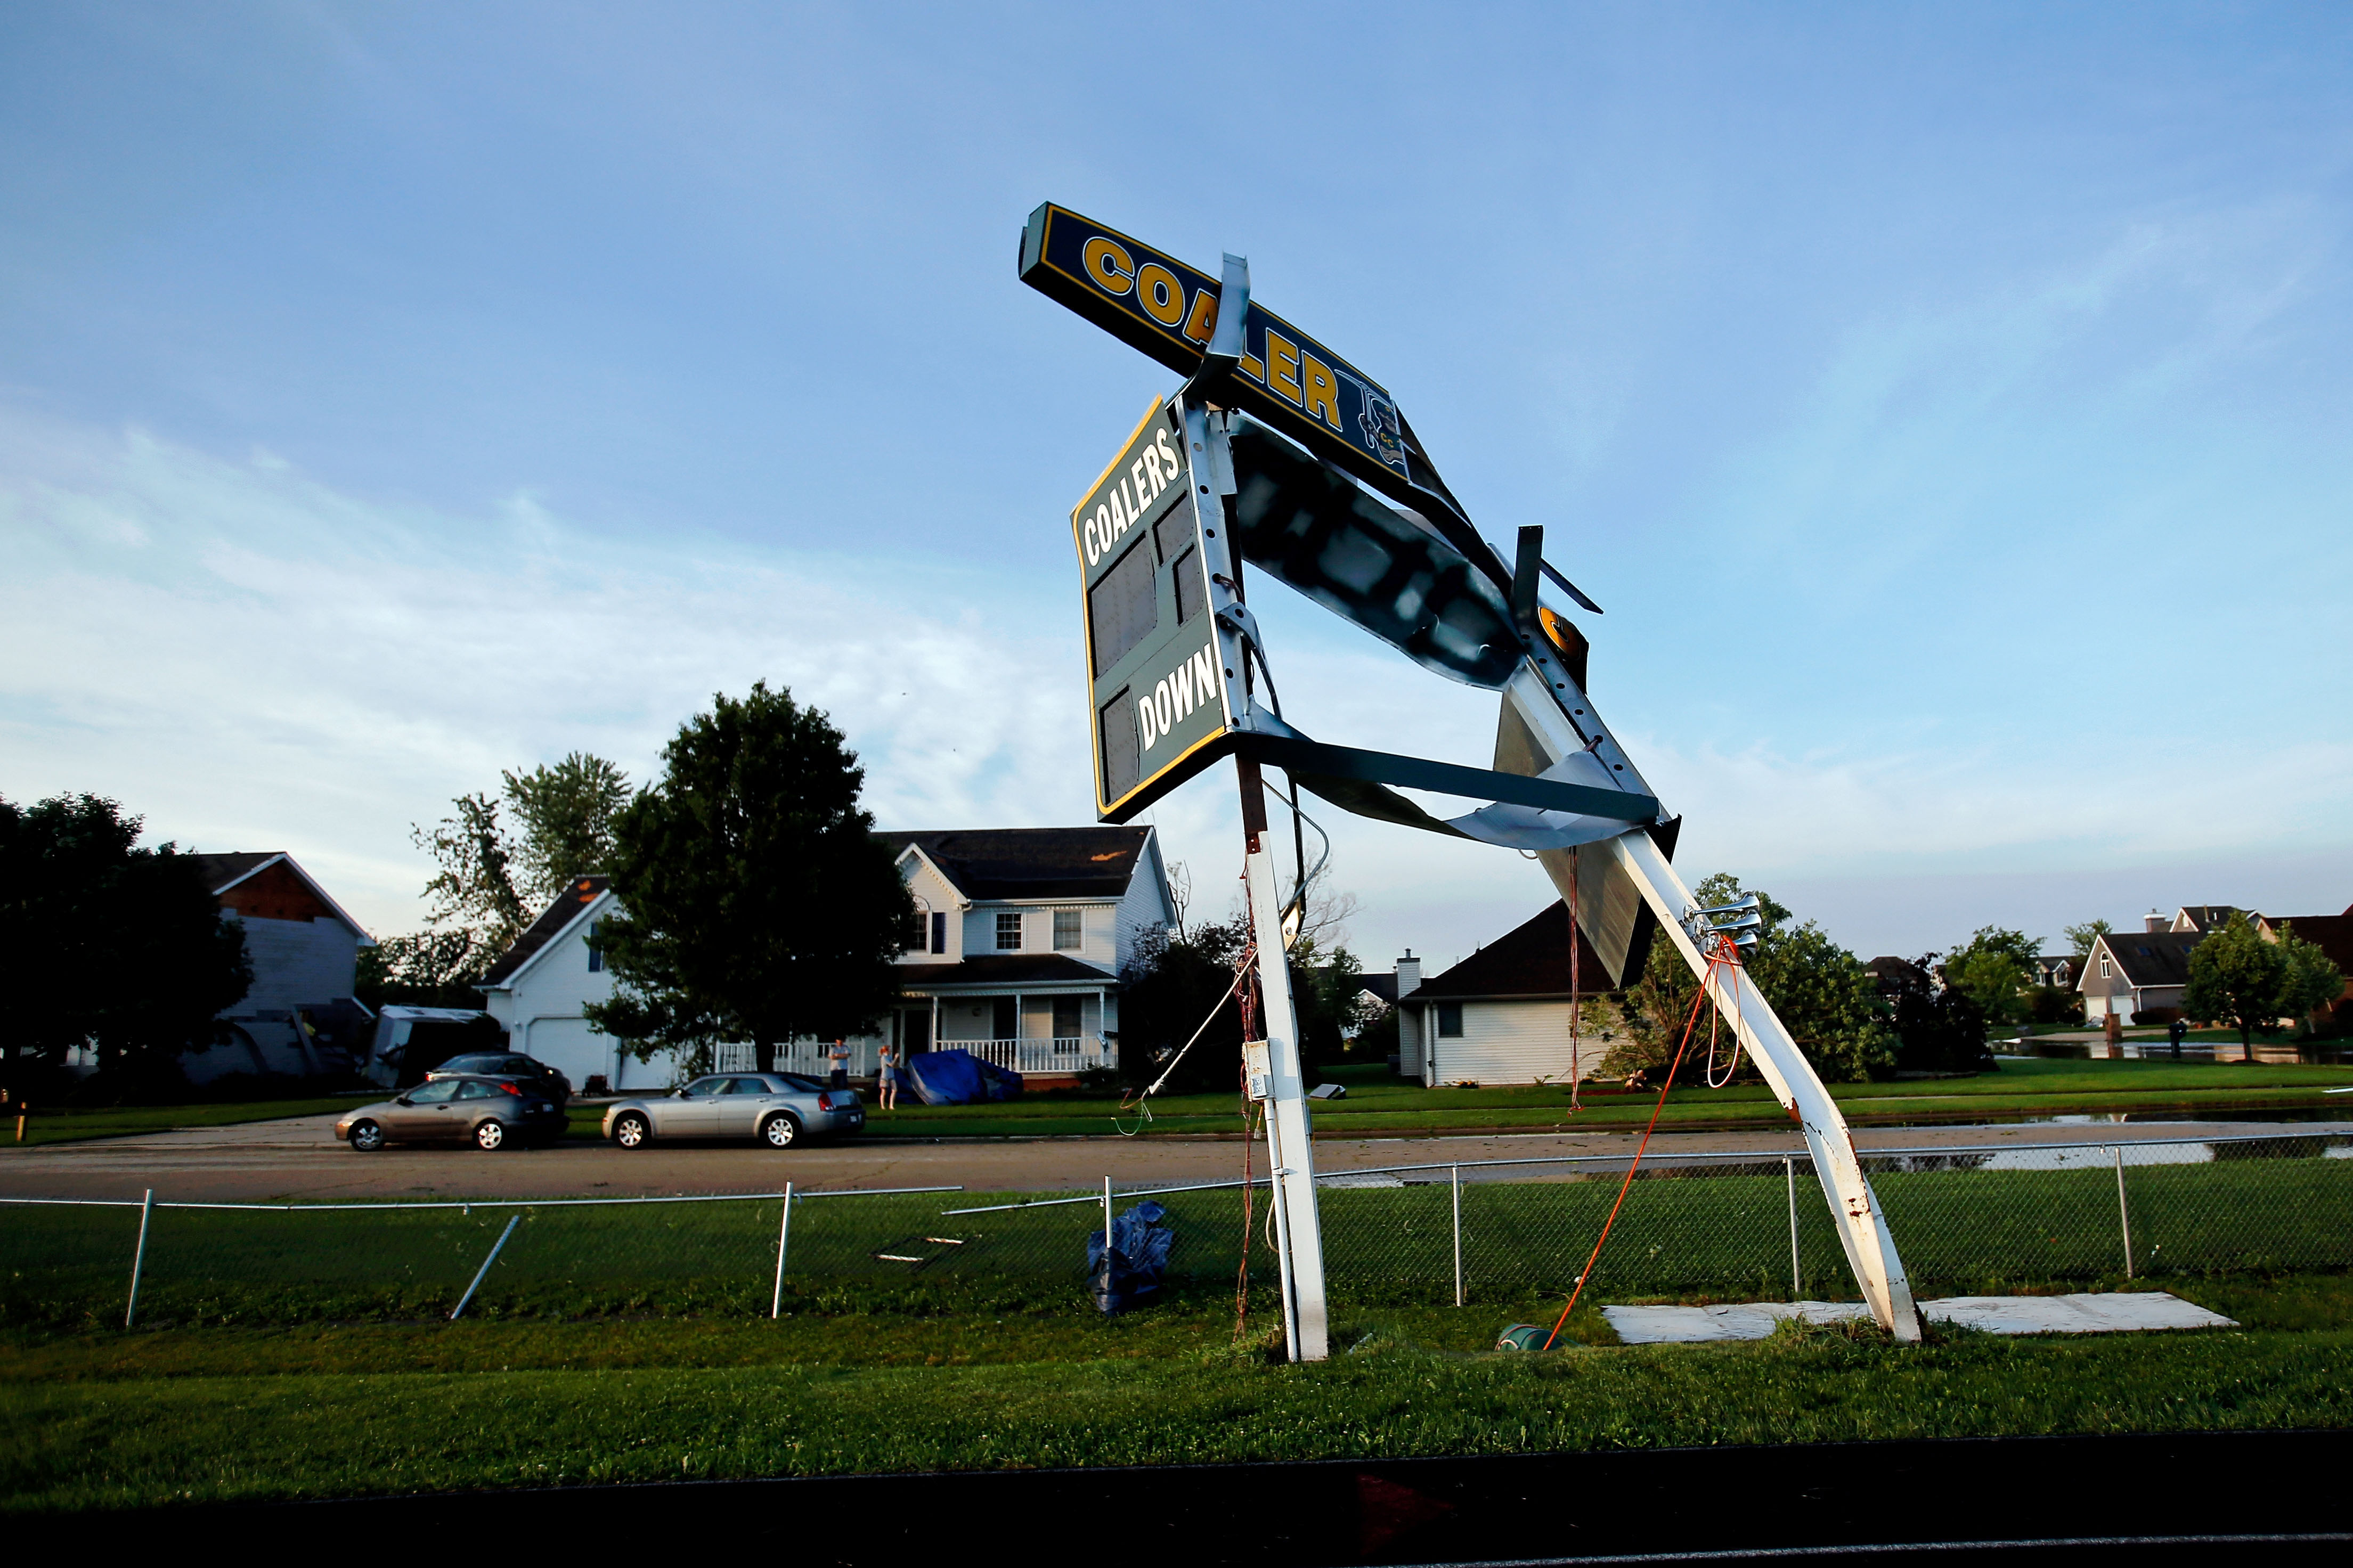 The scoreboard at Coal City High School's football field is left damaged after a tornado struck the previous day on June 23, 2015 in Coal City, Illinois.